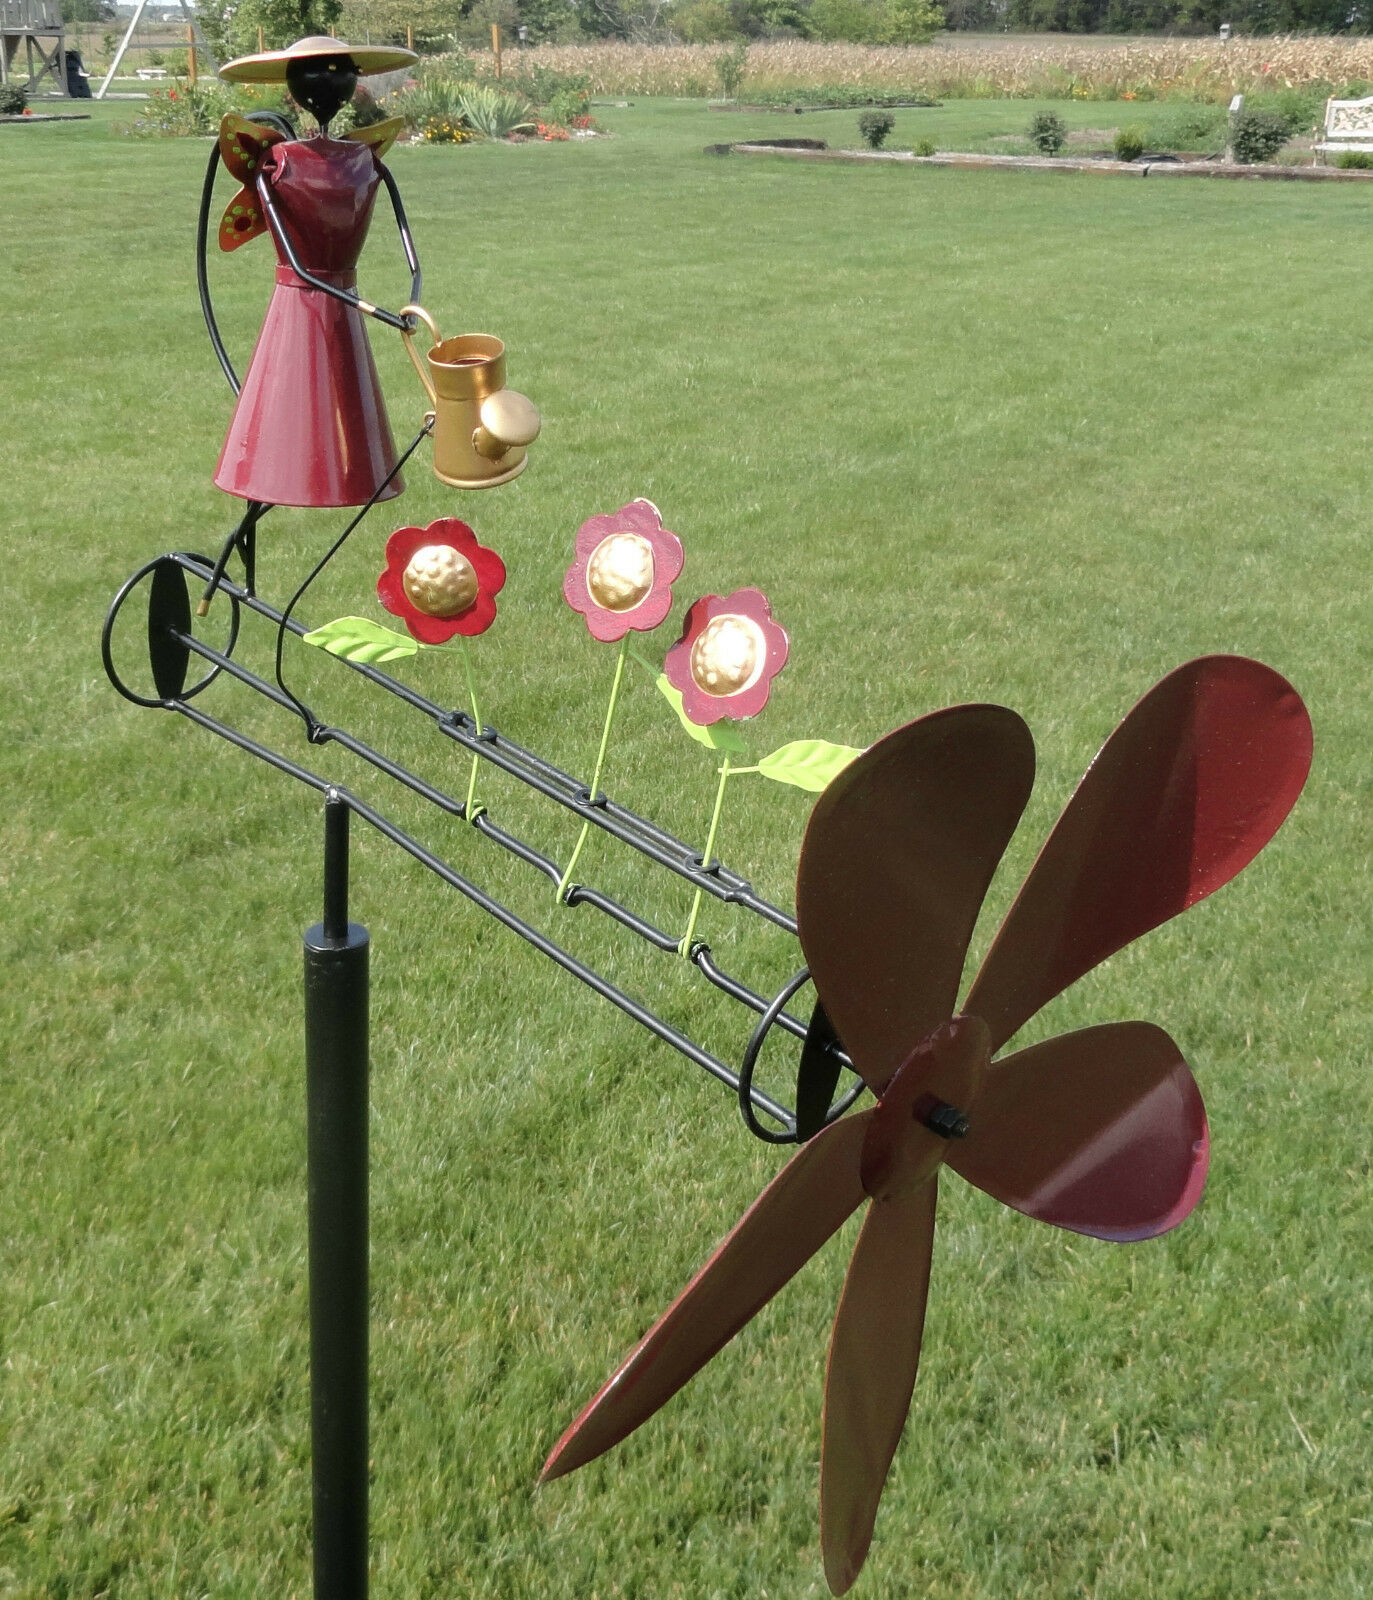 Garden Angel Whirligig Wind Spinner Yard Decor Metal Art Outdoor Decoration